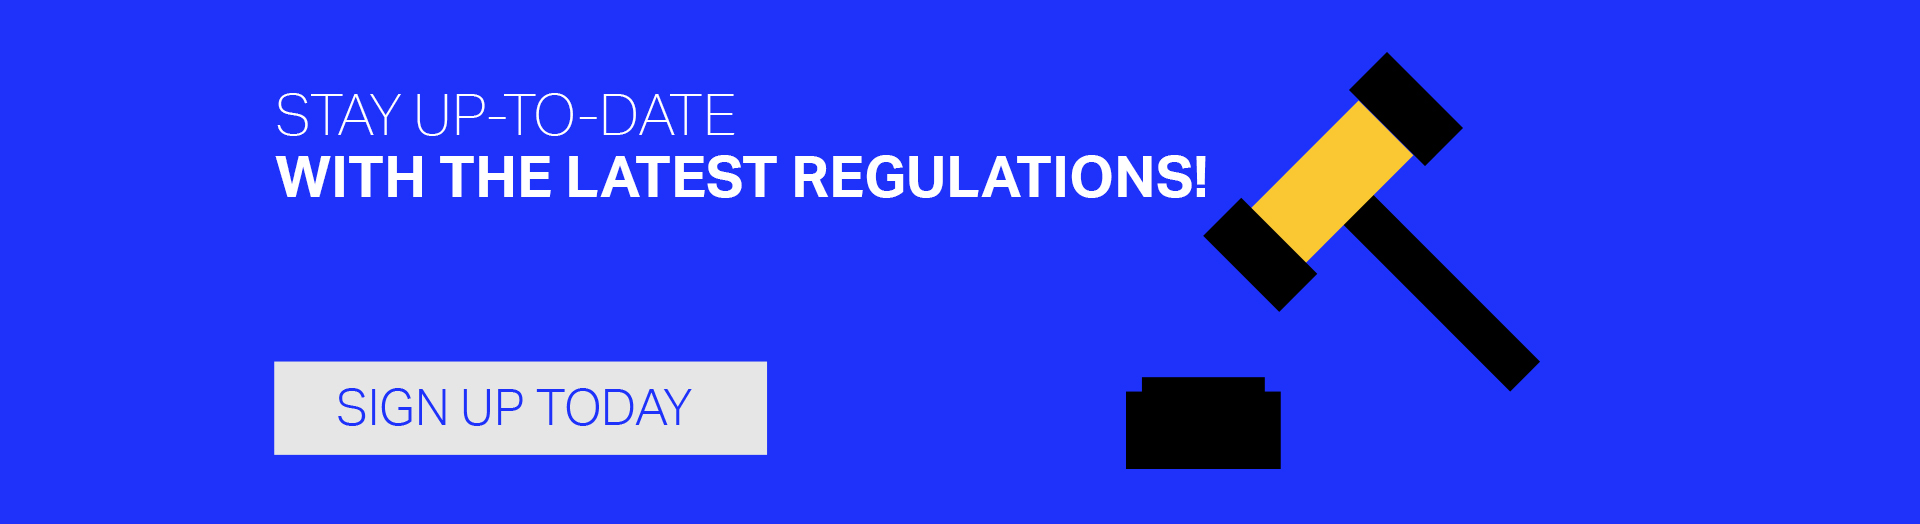 Stay up-to-date with the latest regulations - Sign up today